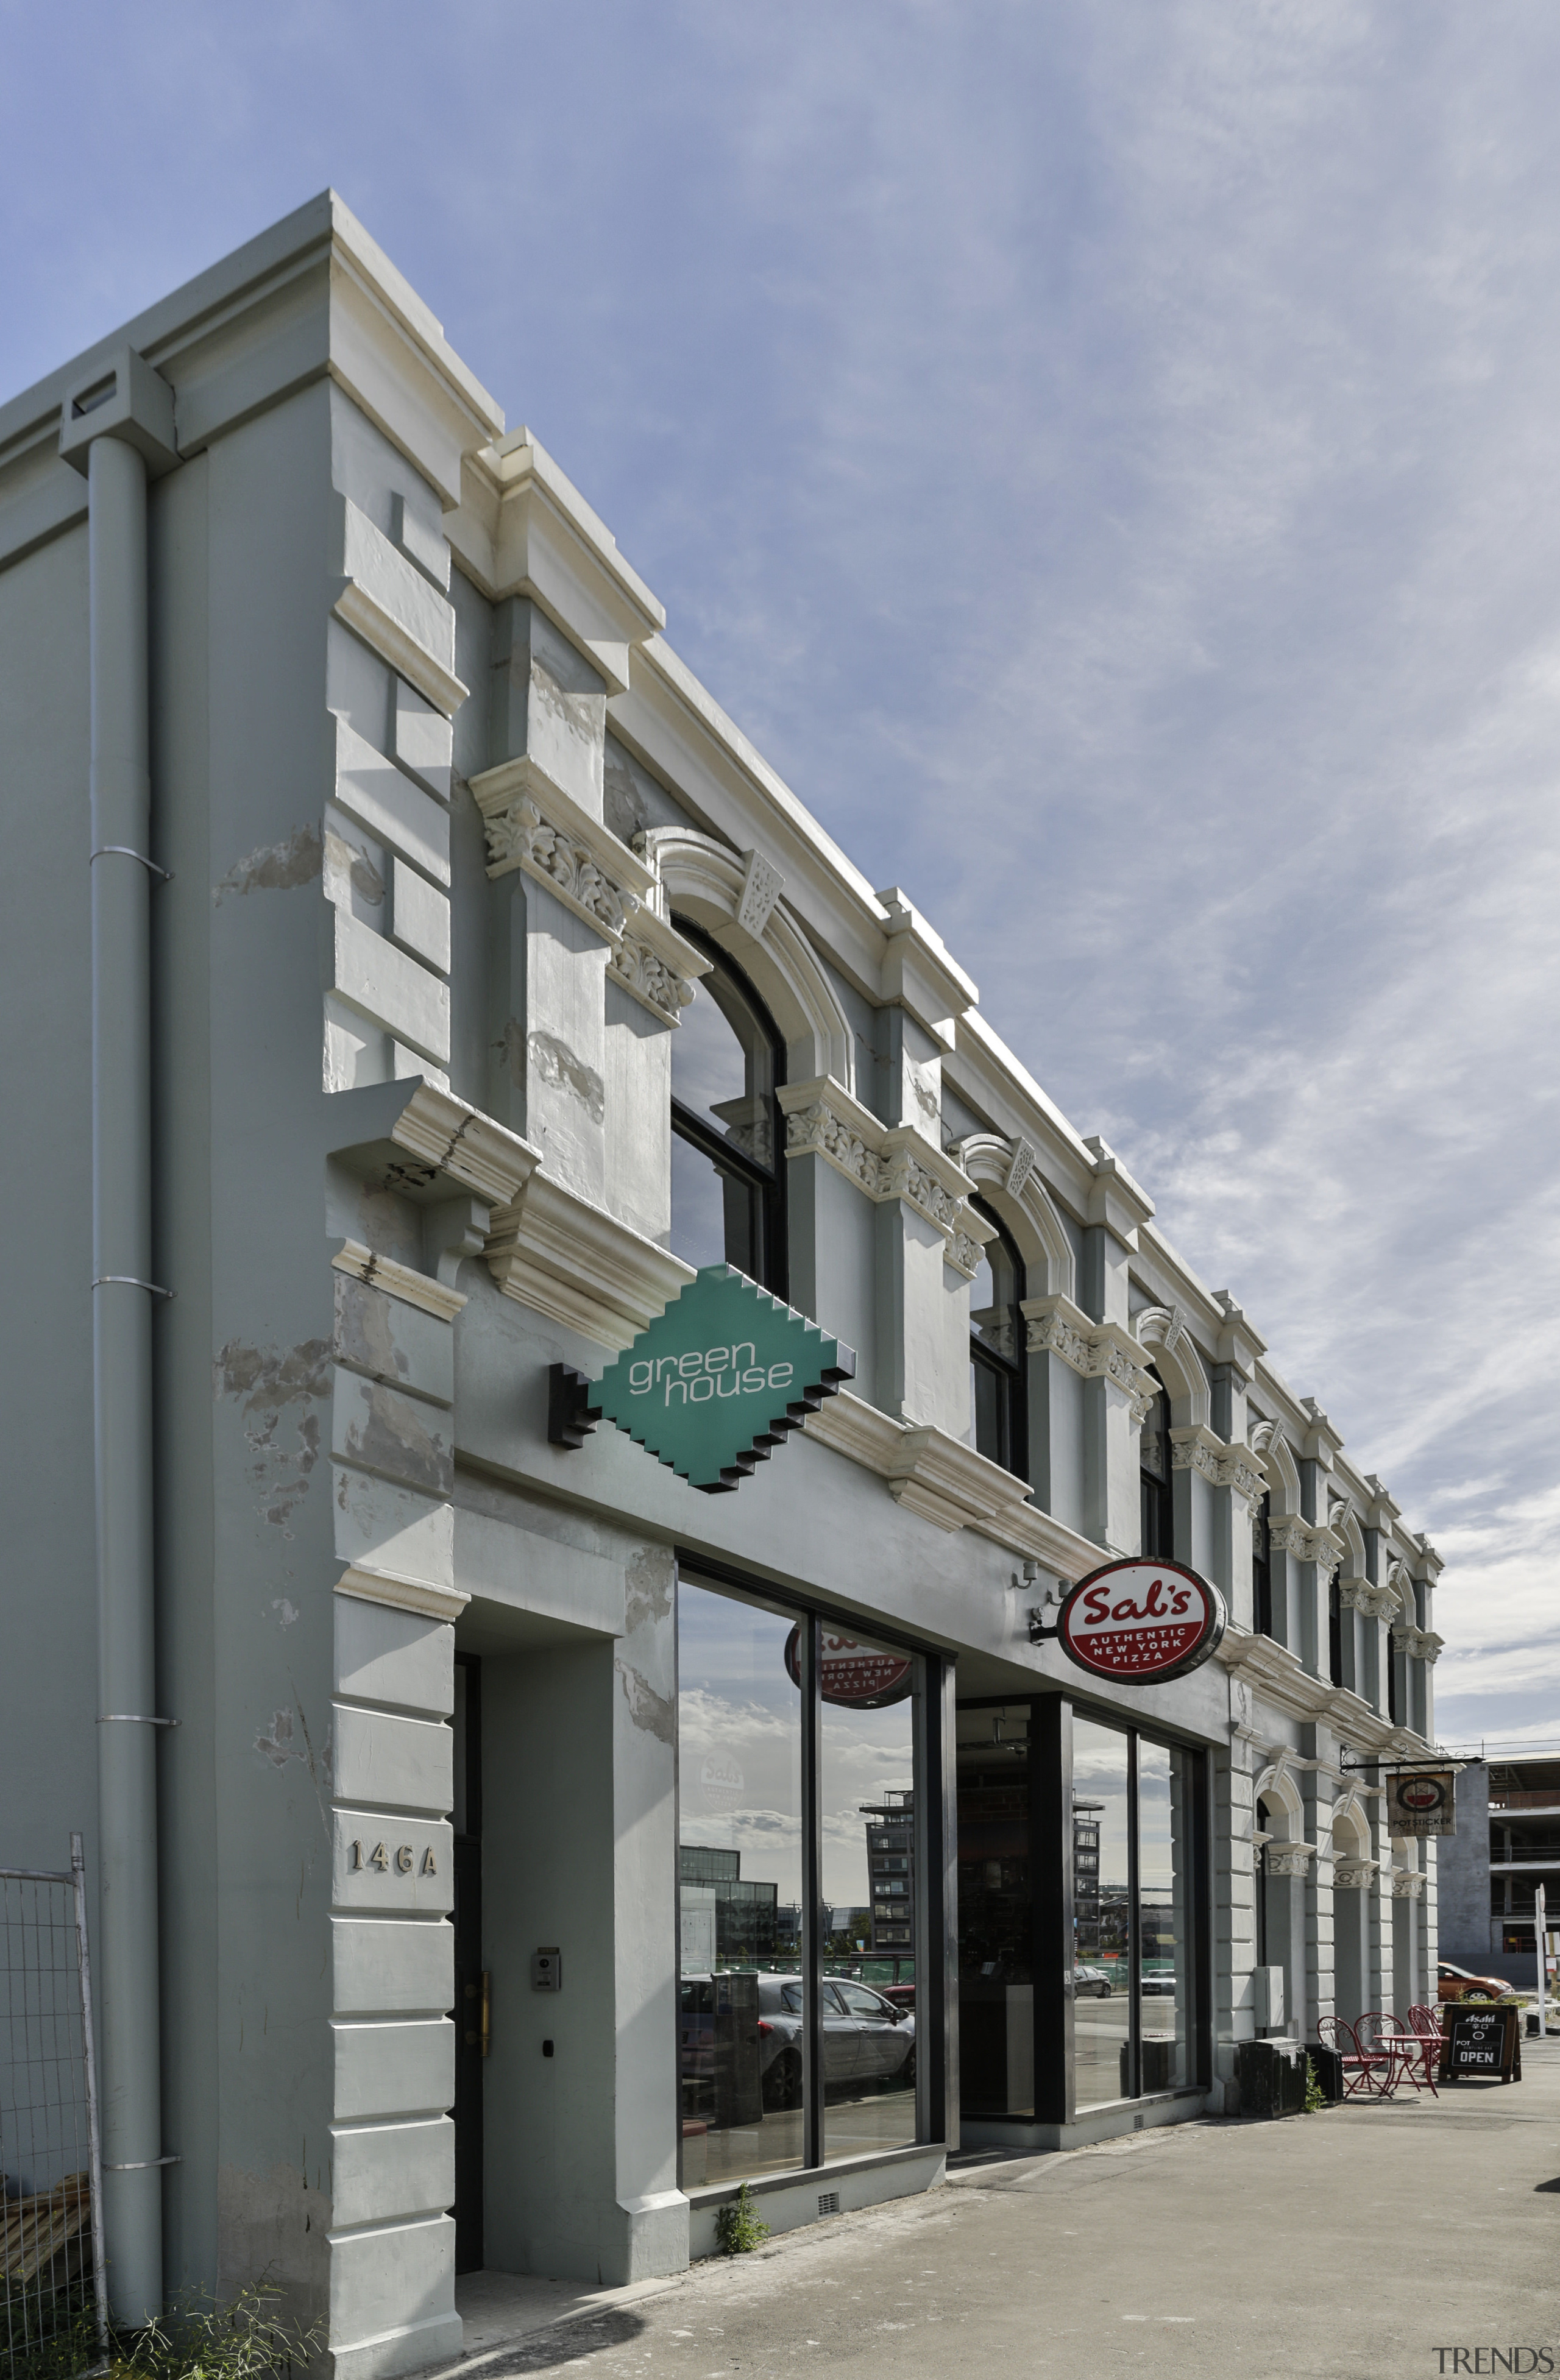 Following the Christchurch earthquakes, an internal structural frame apartment, architecture, building, commercial building, condominium, facade, house, mixed use, neighbourhood, real estate, residential area, gray